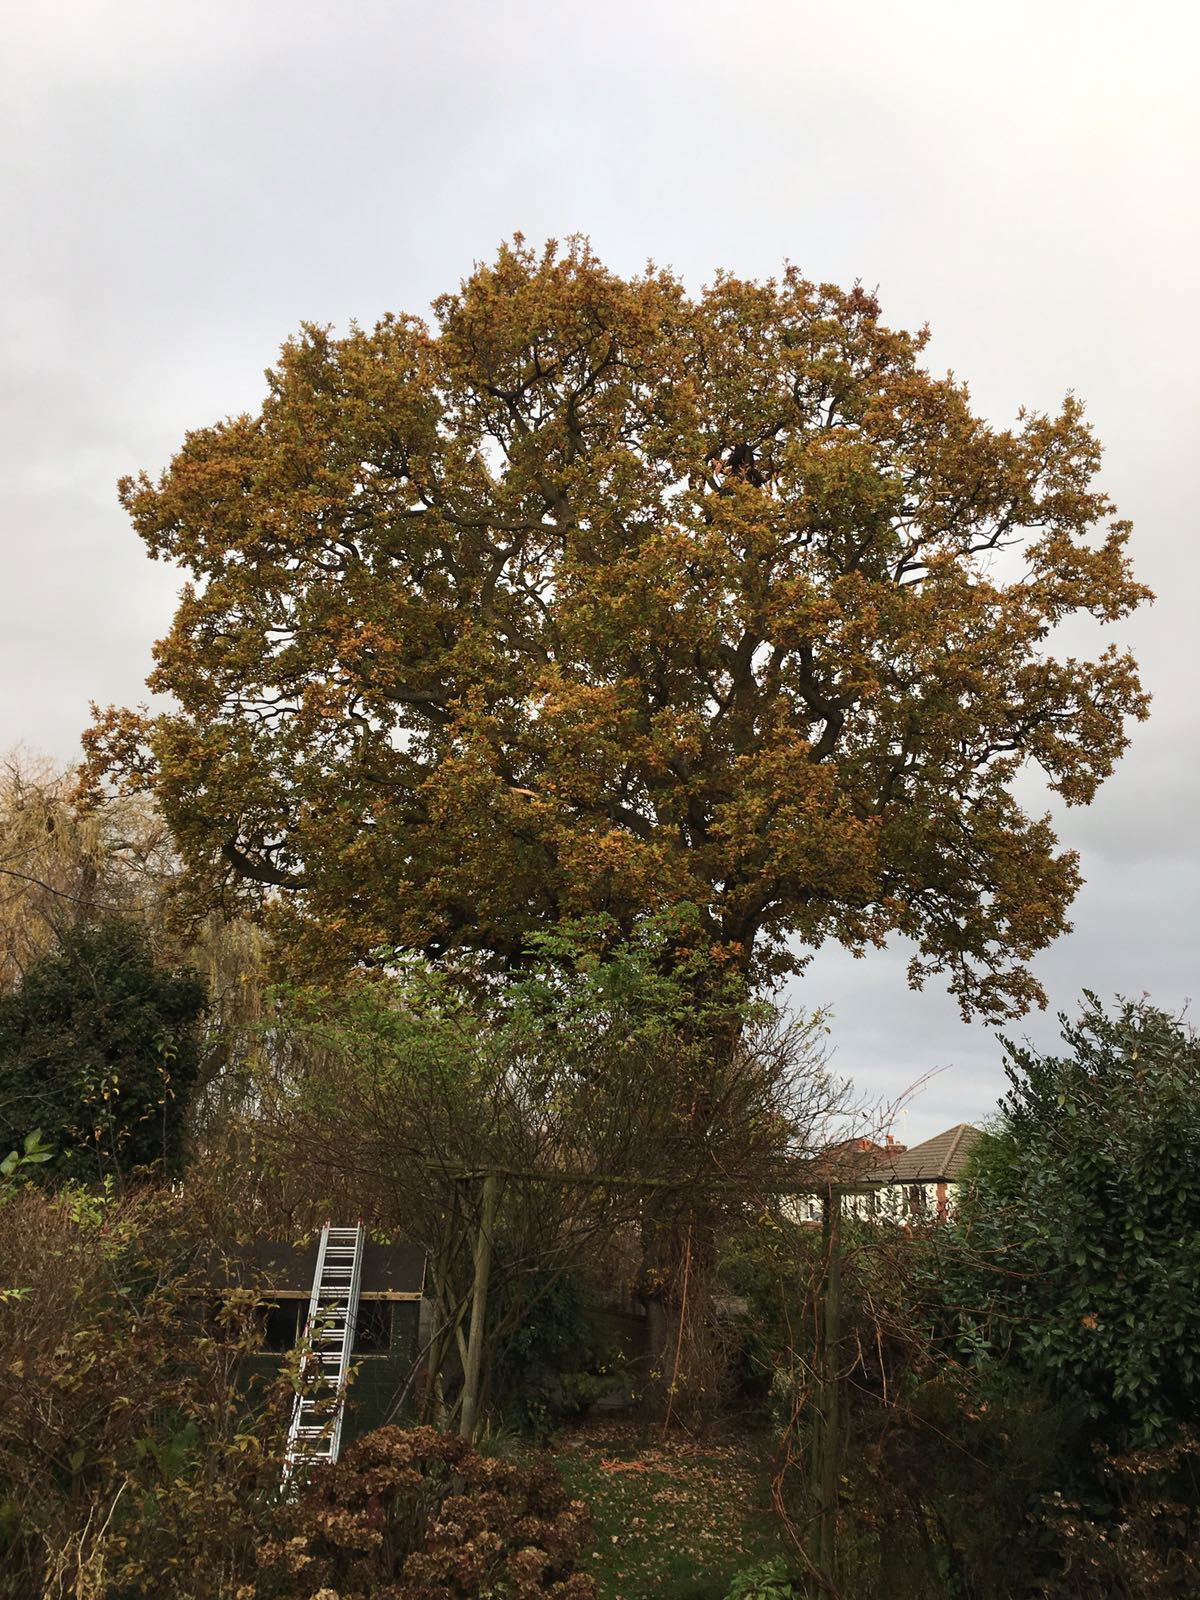 before Crown thinning and deadwood removal on an oak tree in Cheadle Hulme